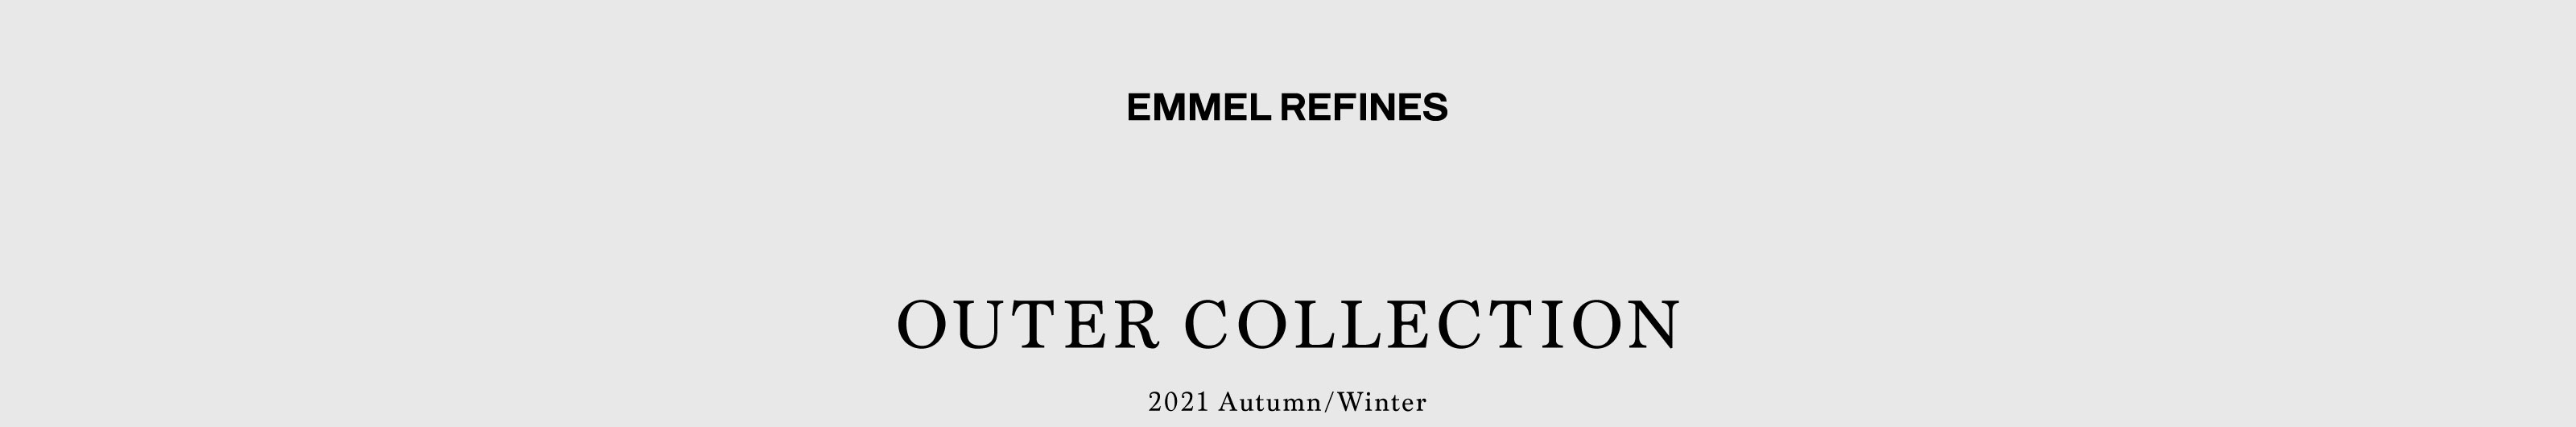 EMMEL REFINES OUTER COLLECTION